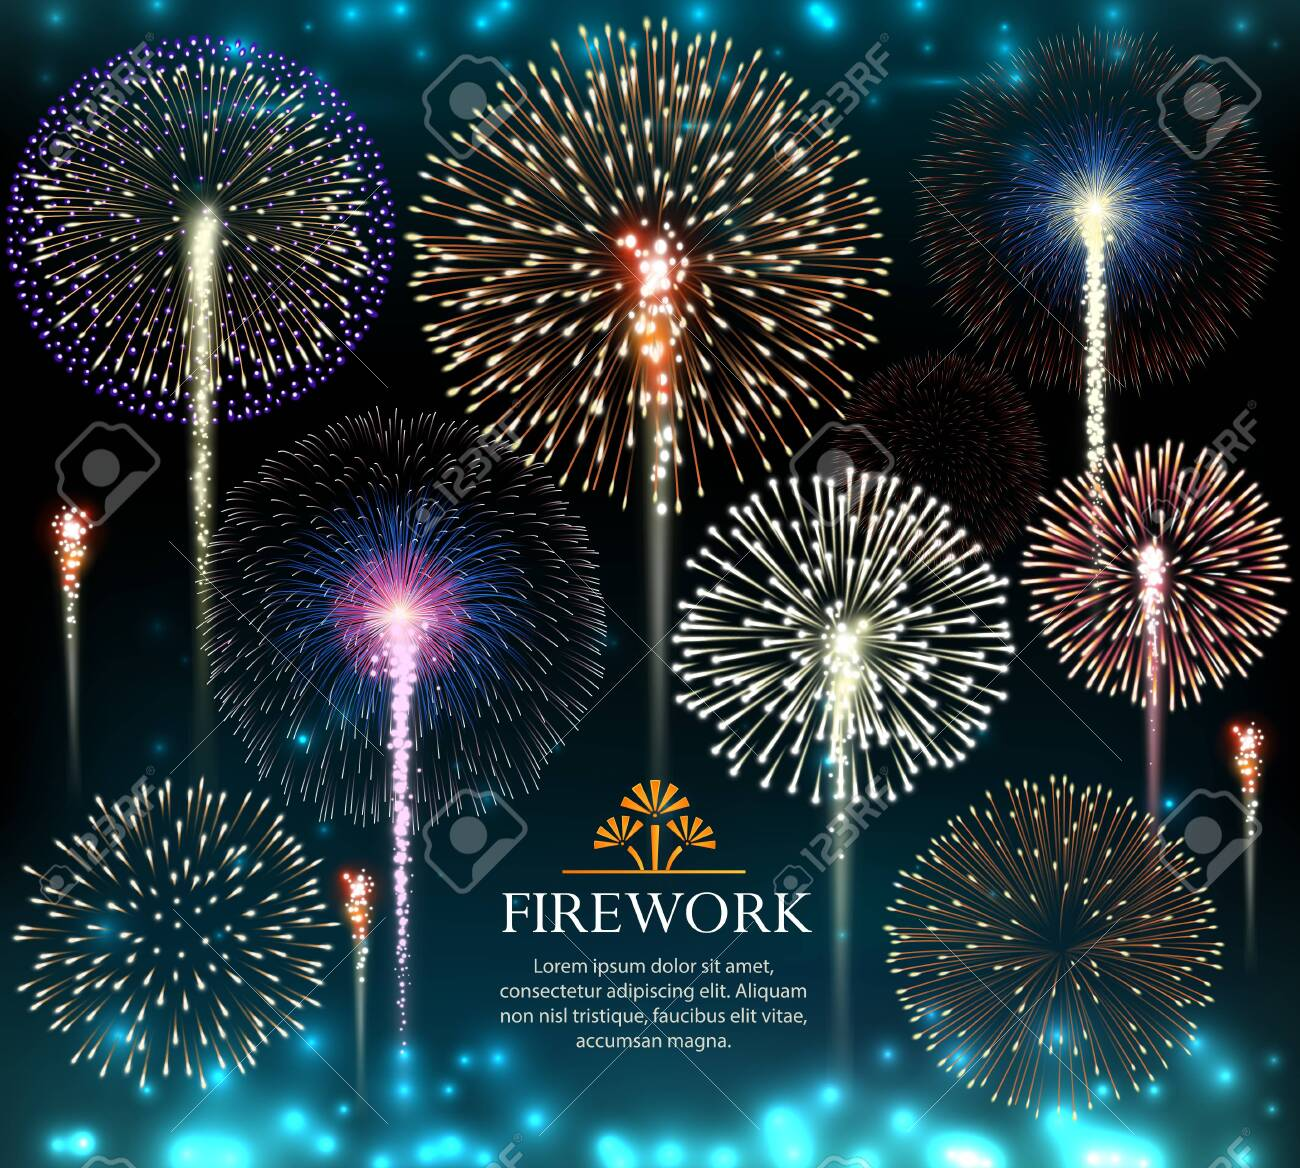 Set of fireworks, invitation to a holiday. Vector illustration - 136137615